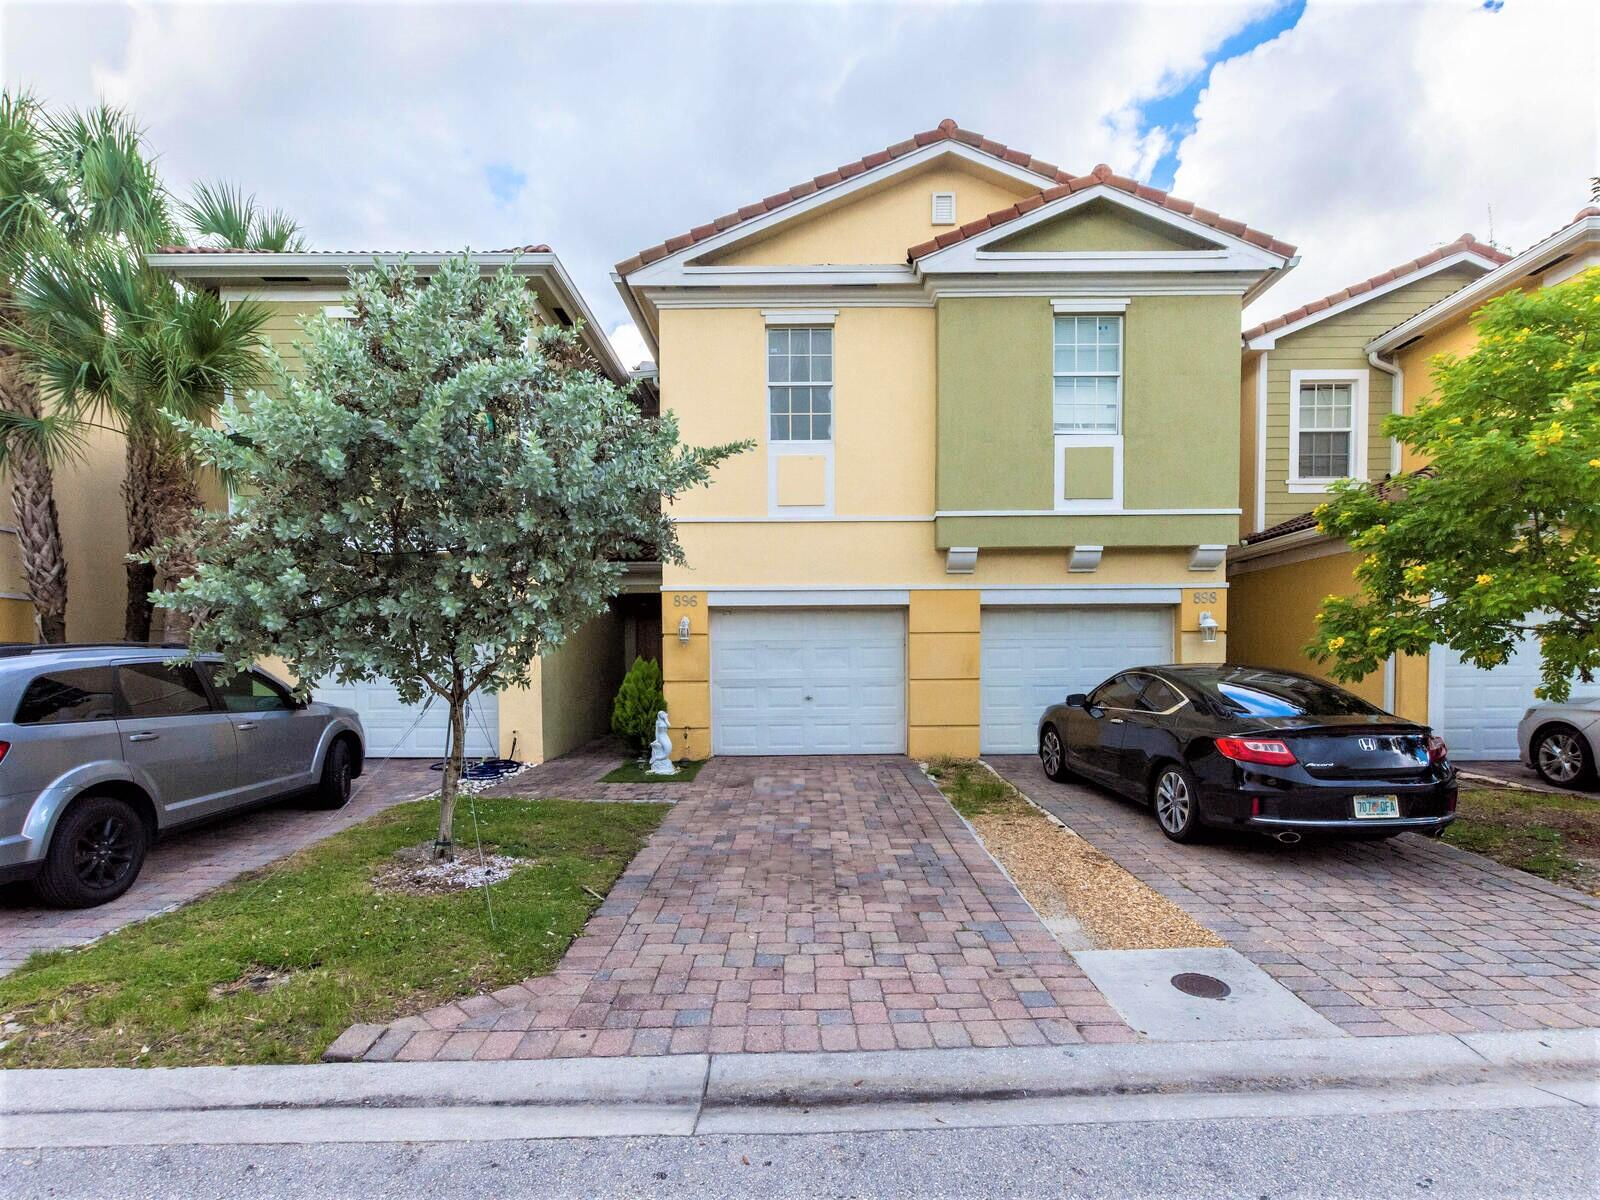 896  Pipers Cay Drive 143 For Sale 10747089, FL